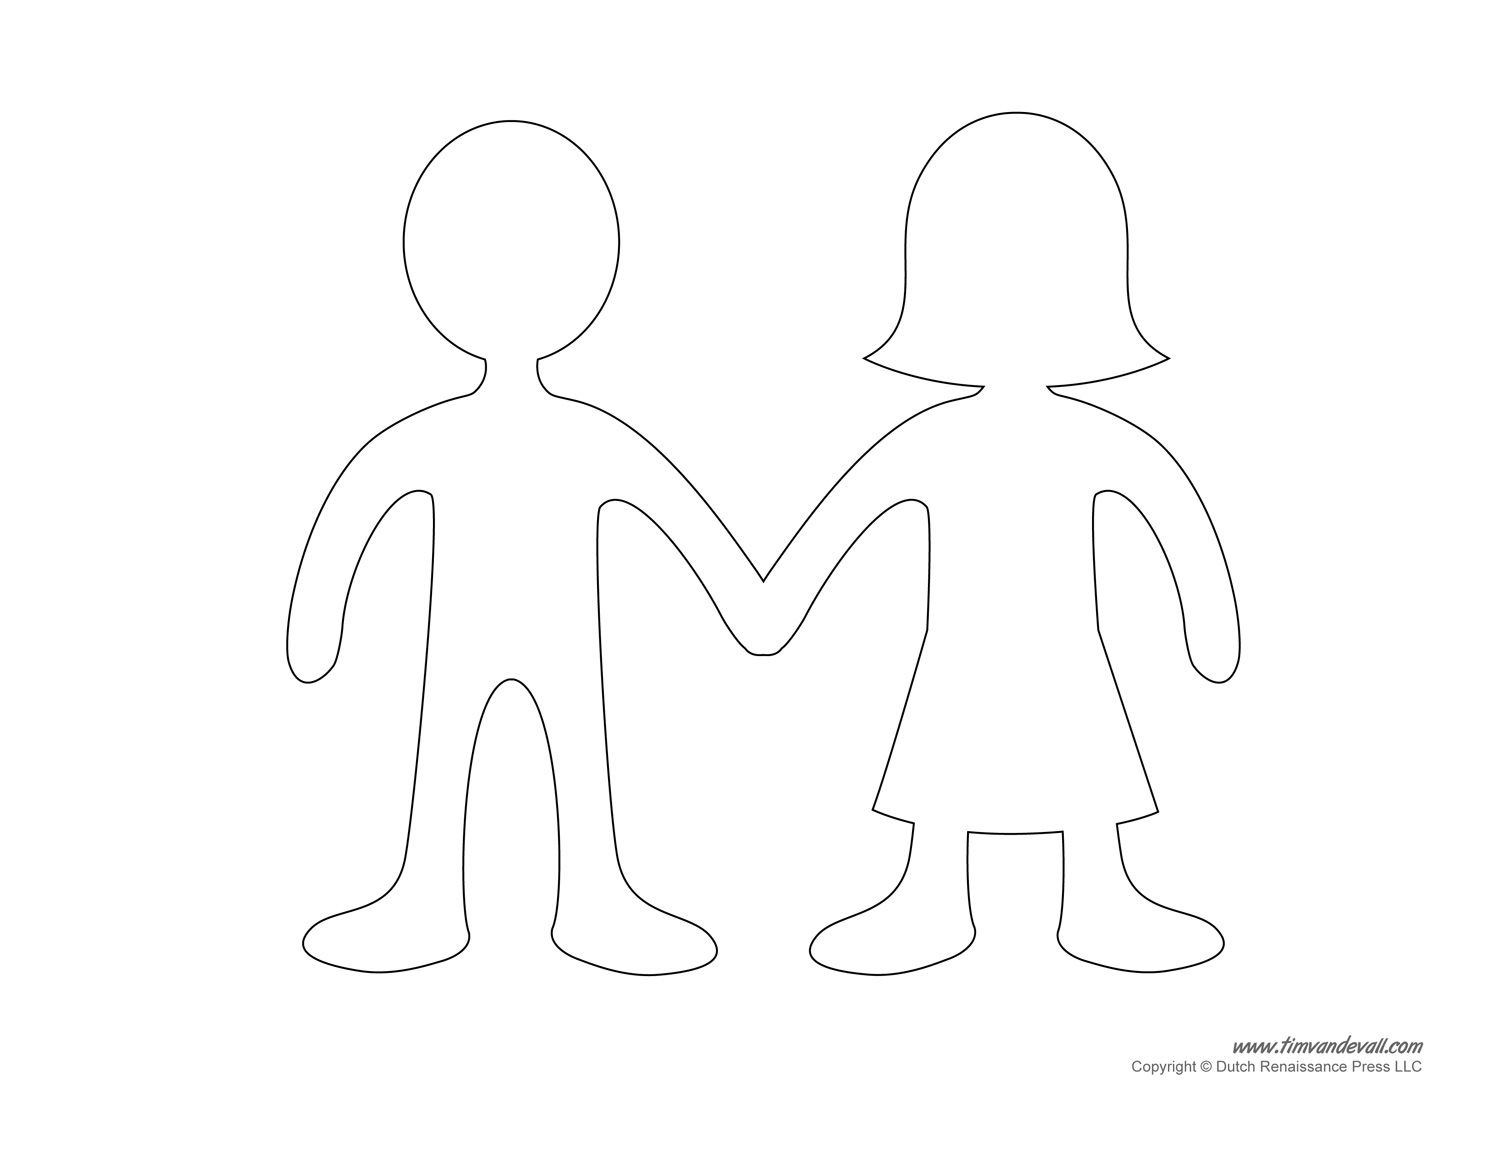 Blank Paper Doll Templates | Special Crafts | Paper Doll Template - Free Printable Person Template